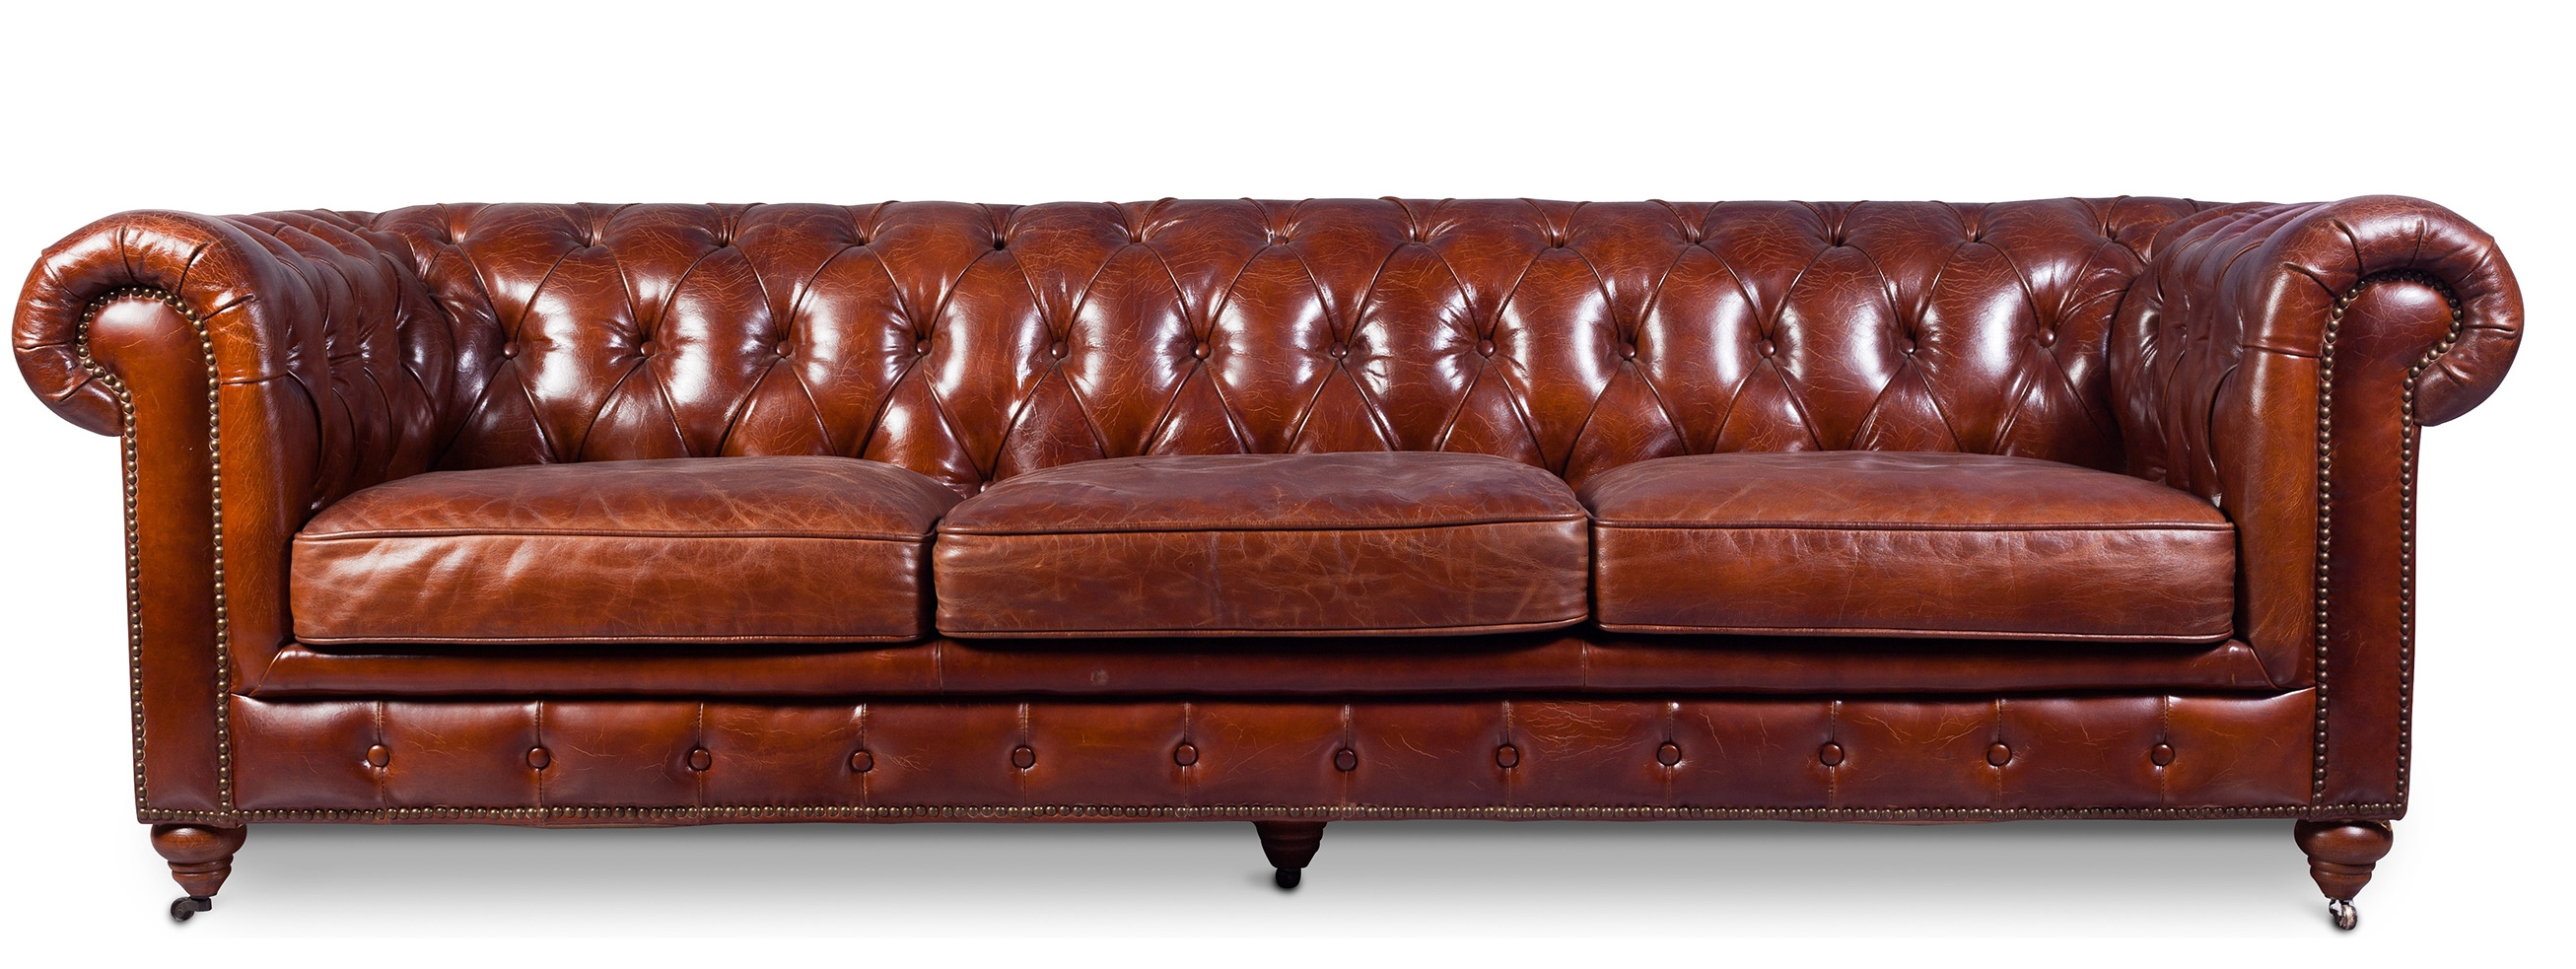 Canapé Cuir Brun Canapé 4 Places Cuir Marron Clair Chesterfield Lower